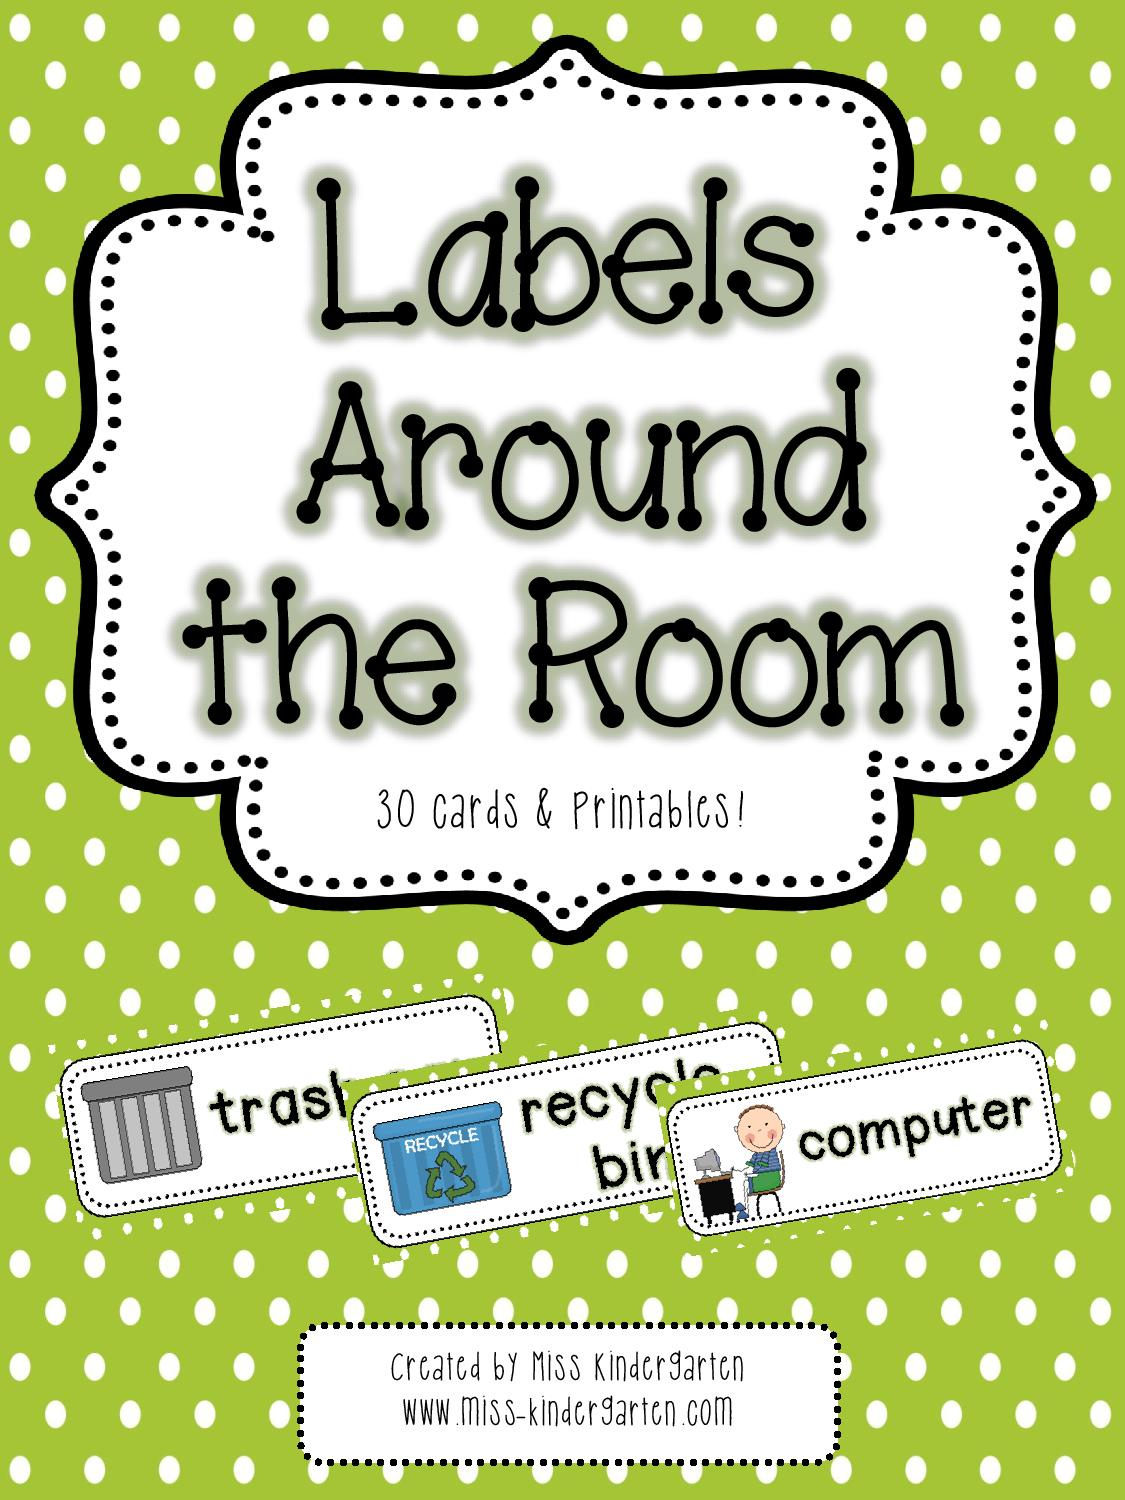 Hilaire image with regard to classroom signs printable